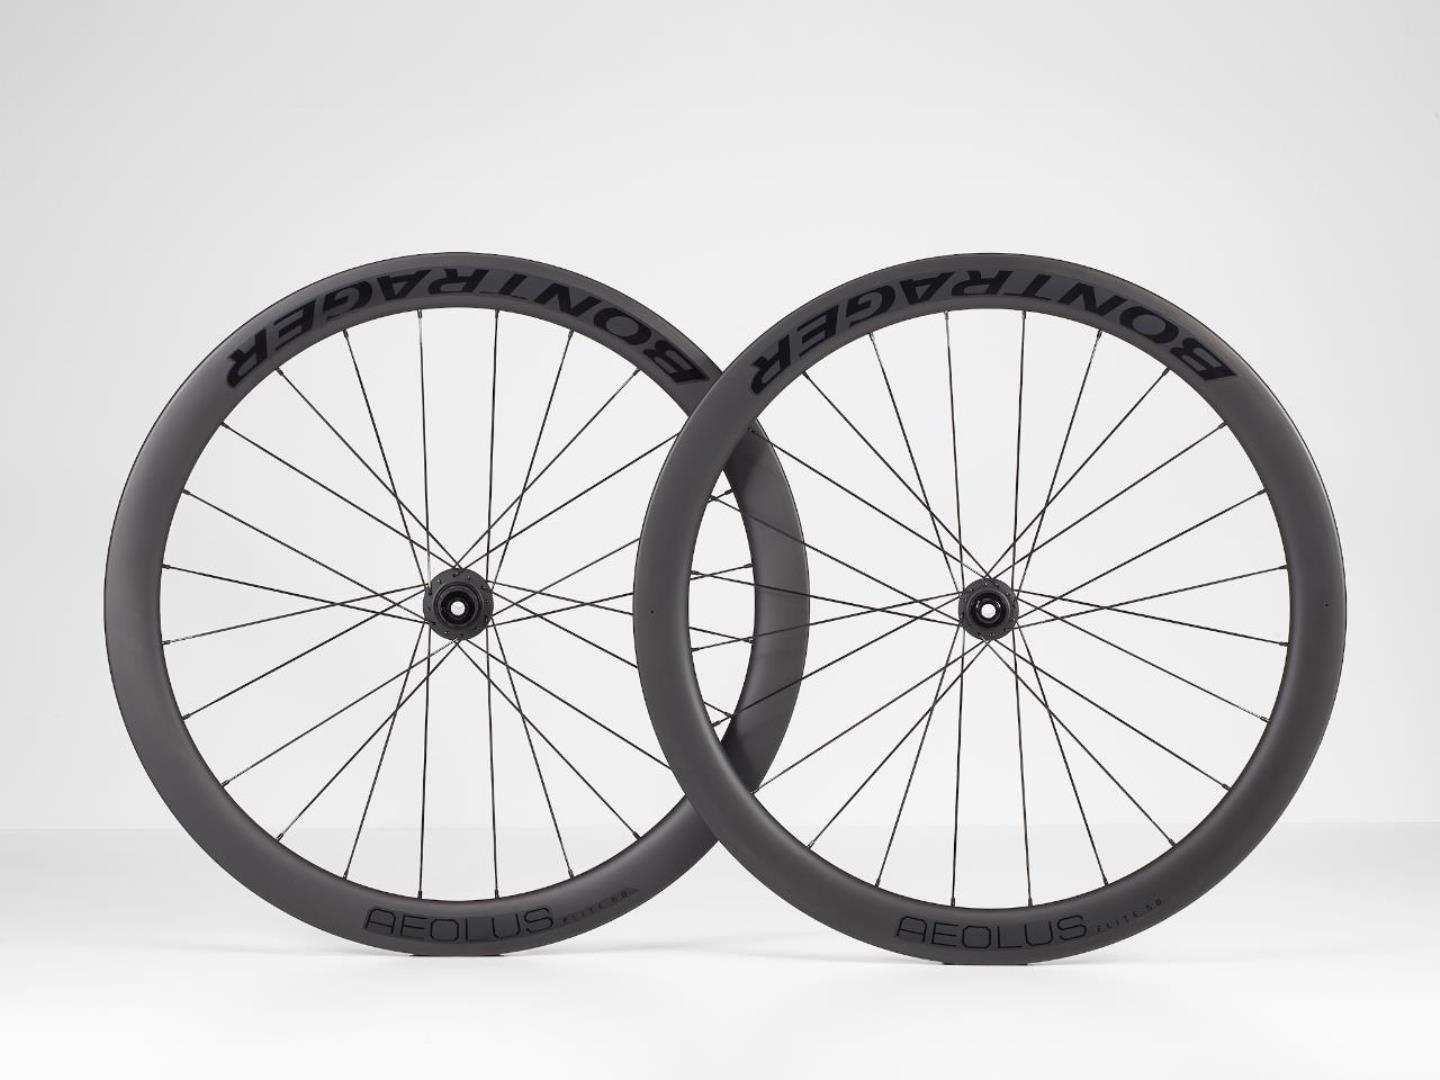 Bontrager Σετ Τροχών Aeolus Elite 50 TLR Disc